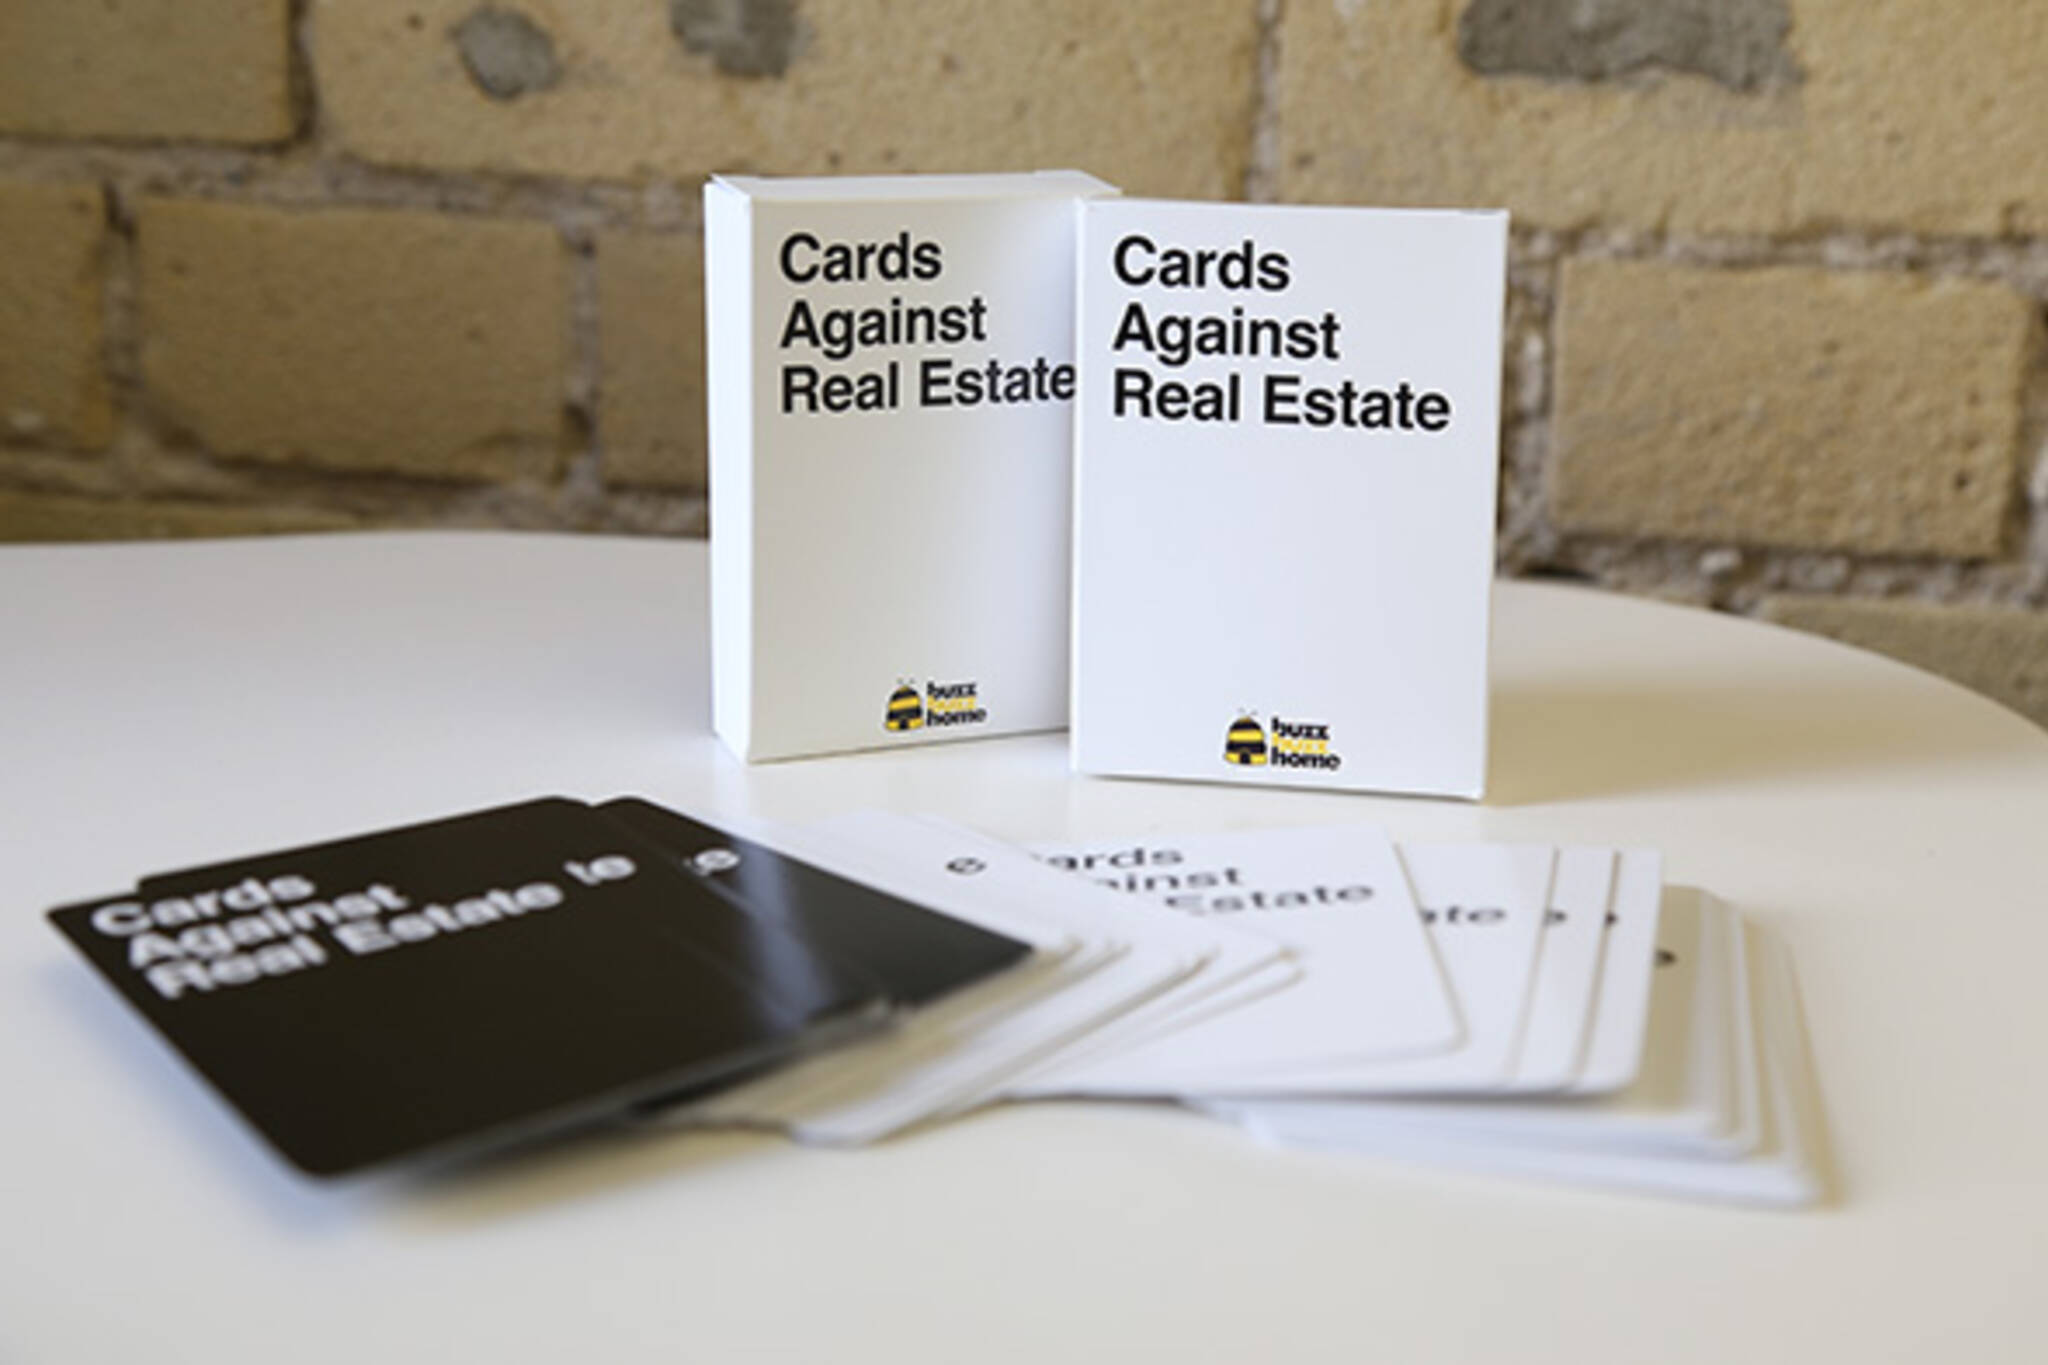 Cards against real estate toronto